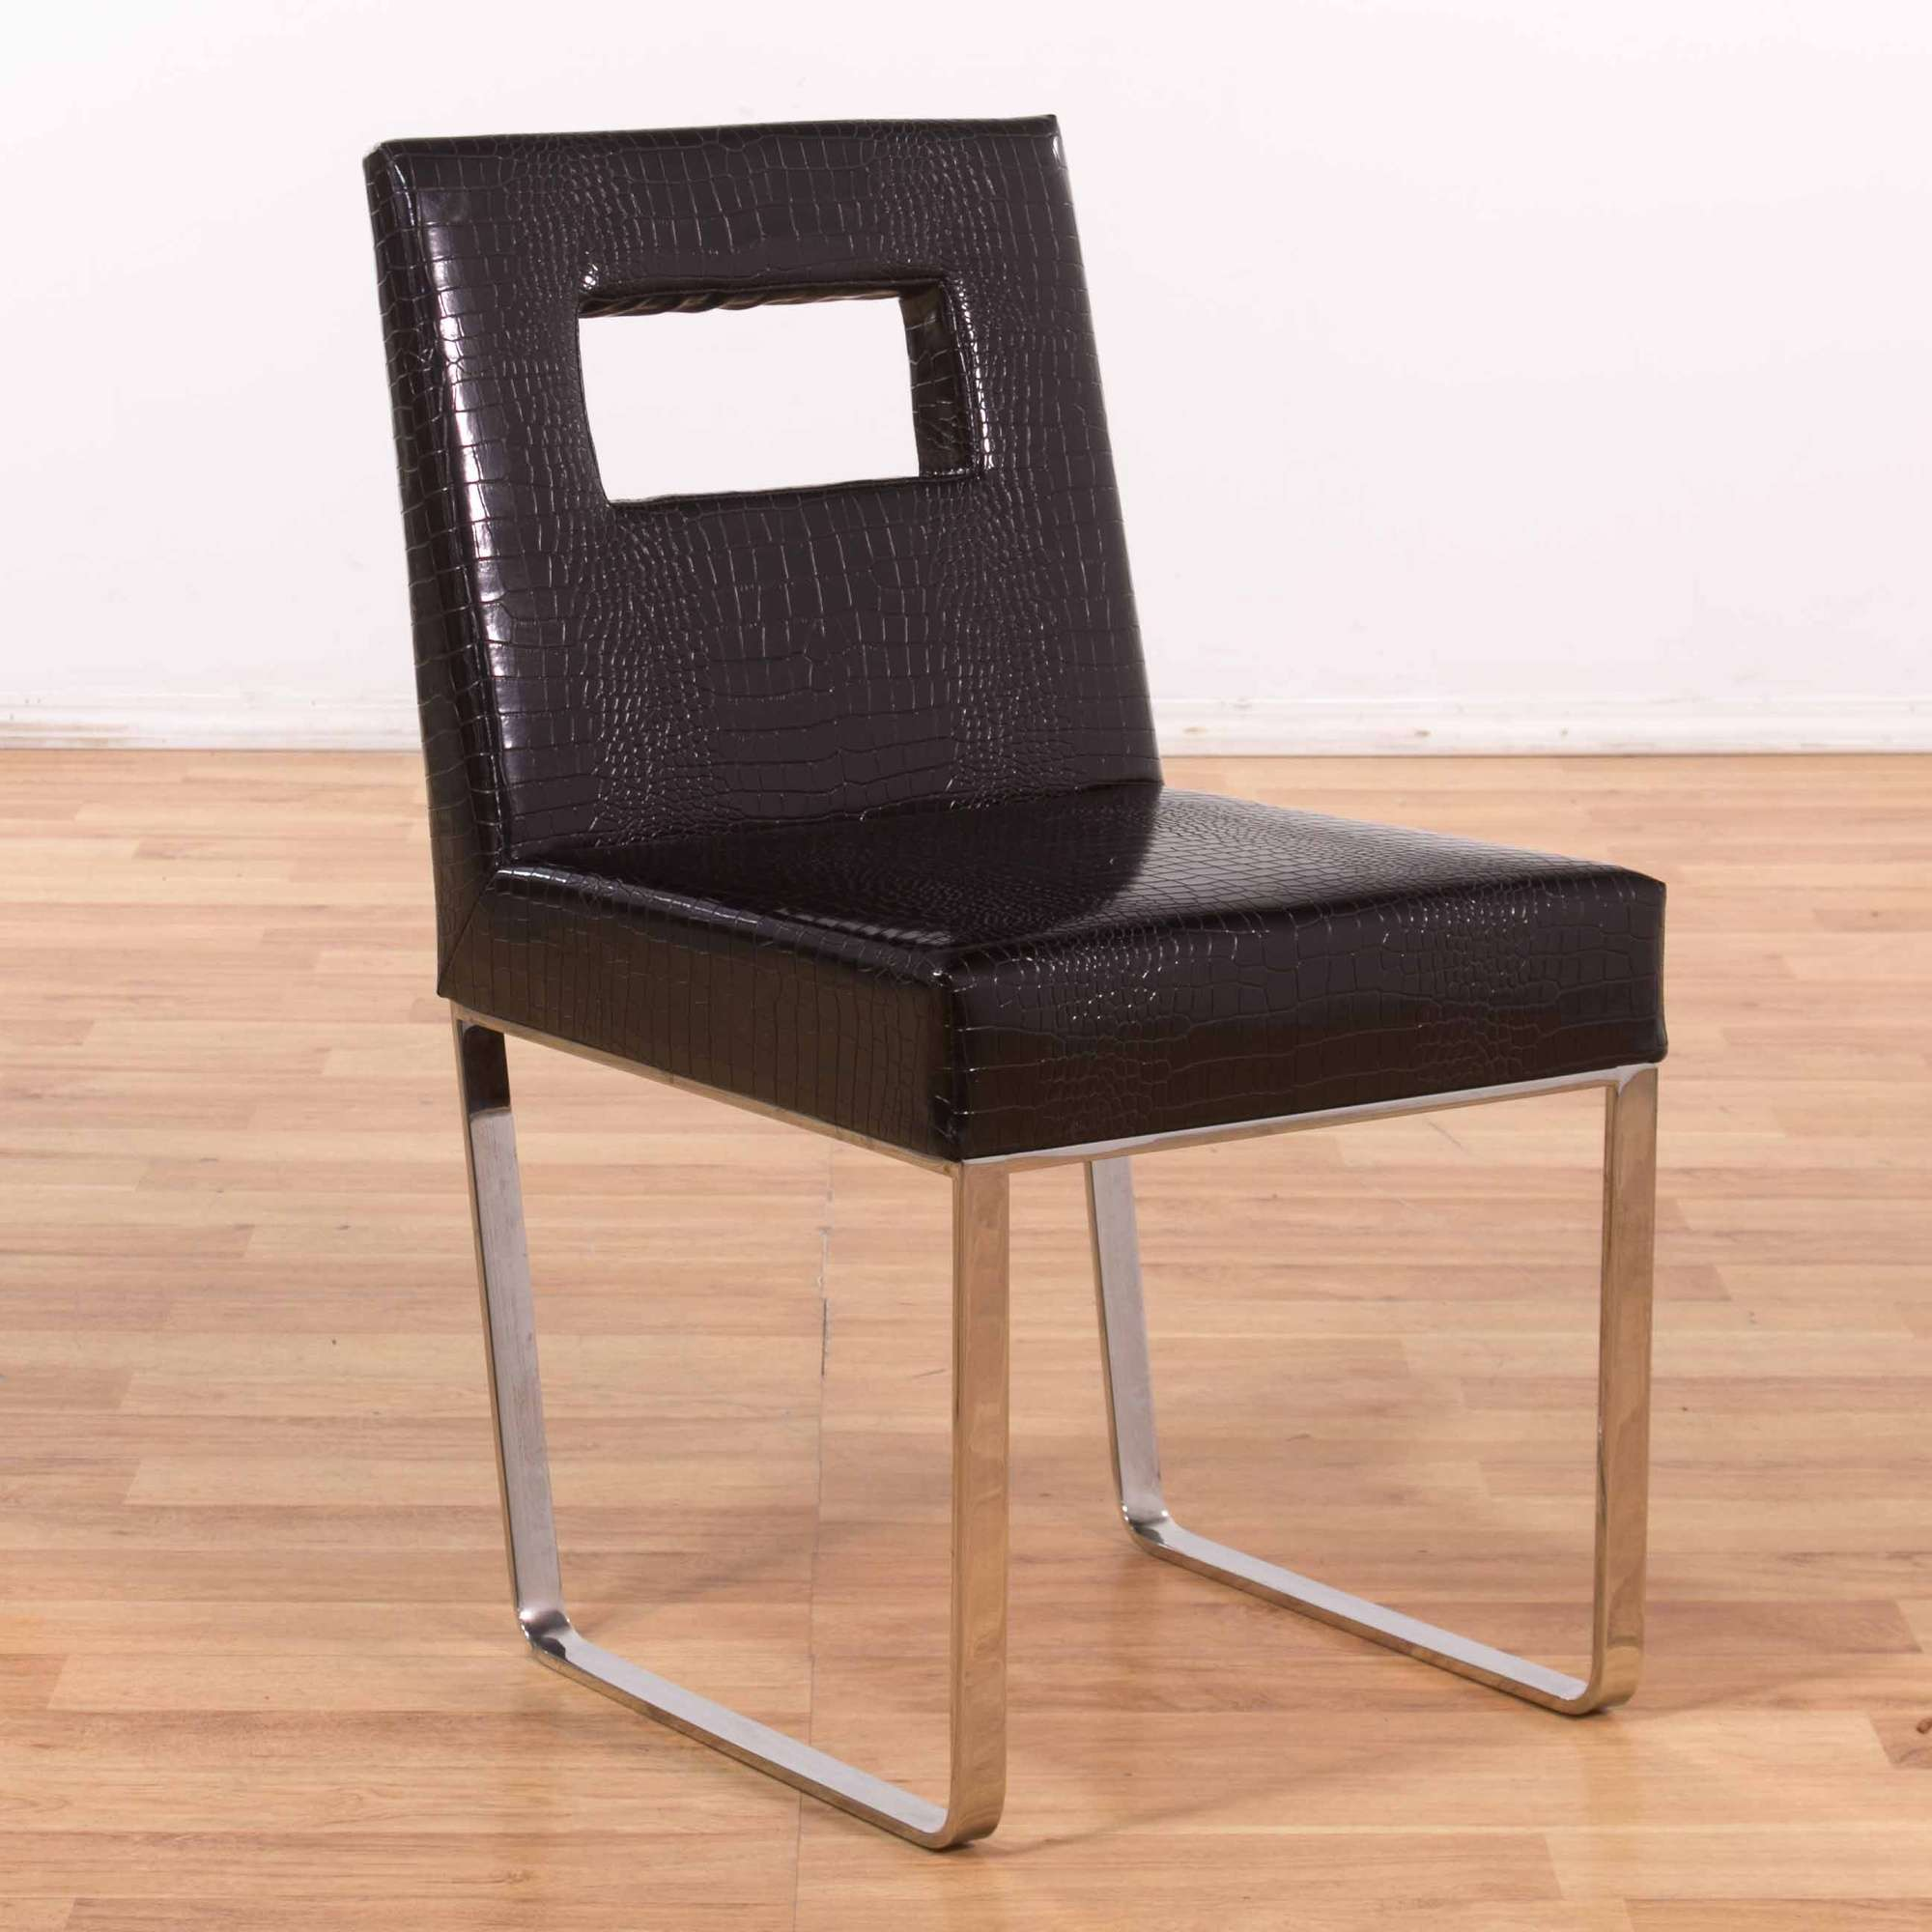 Terrific Modern Black Faux Alligator Skin Leather Accent Chair Andrewgaddart Wooden Chair Designs For Living Room Andrewgaddartcom